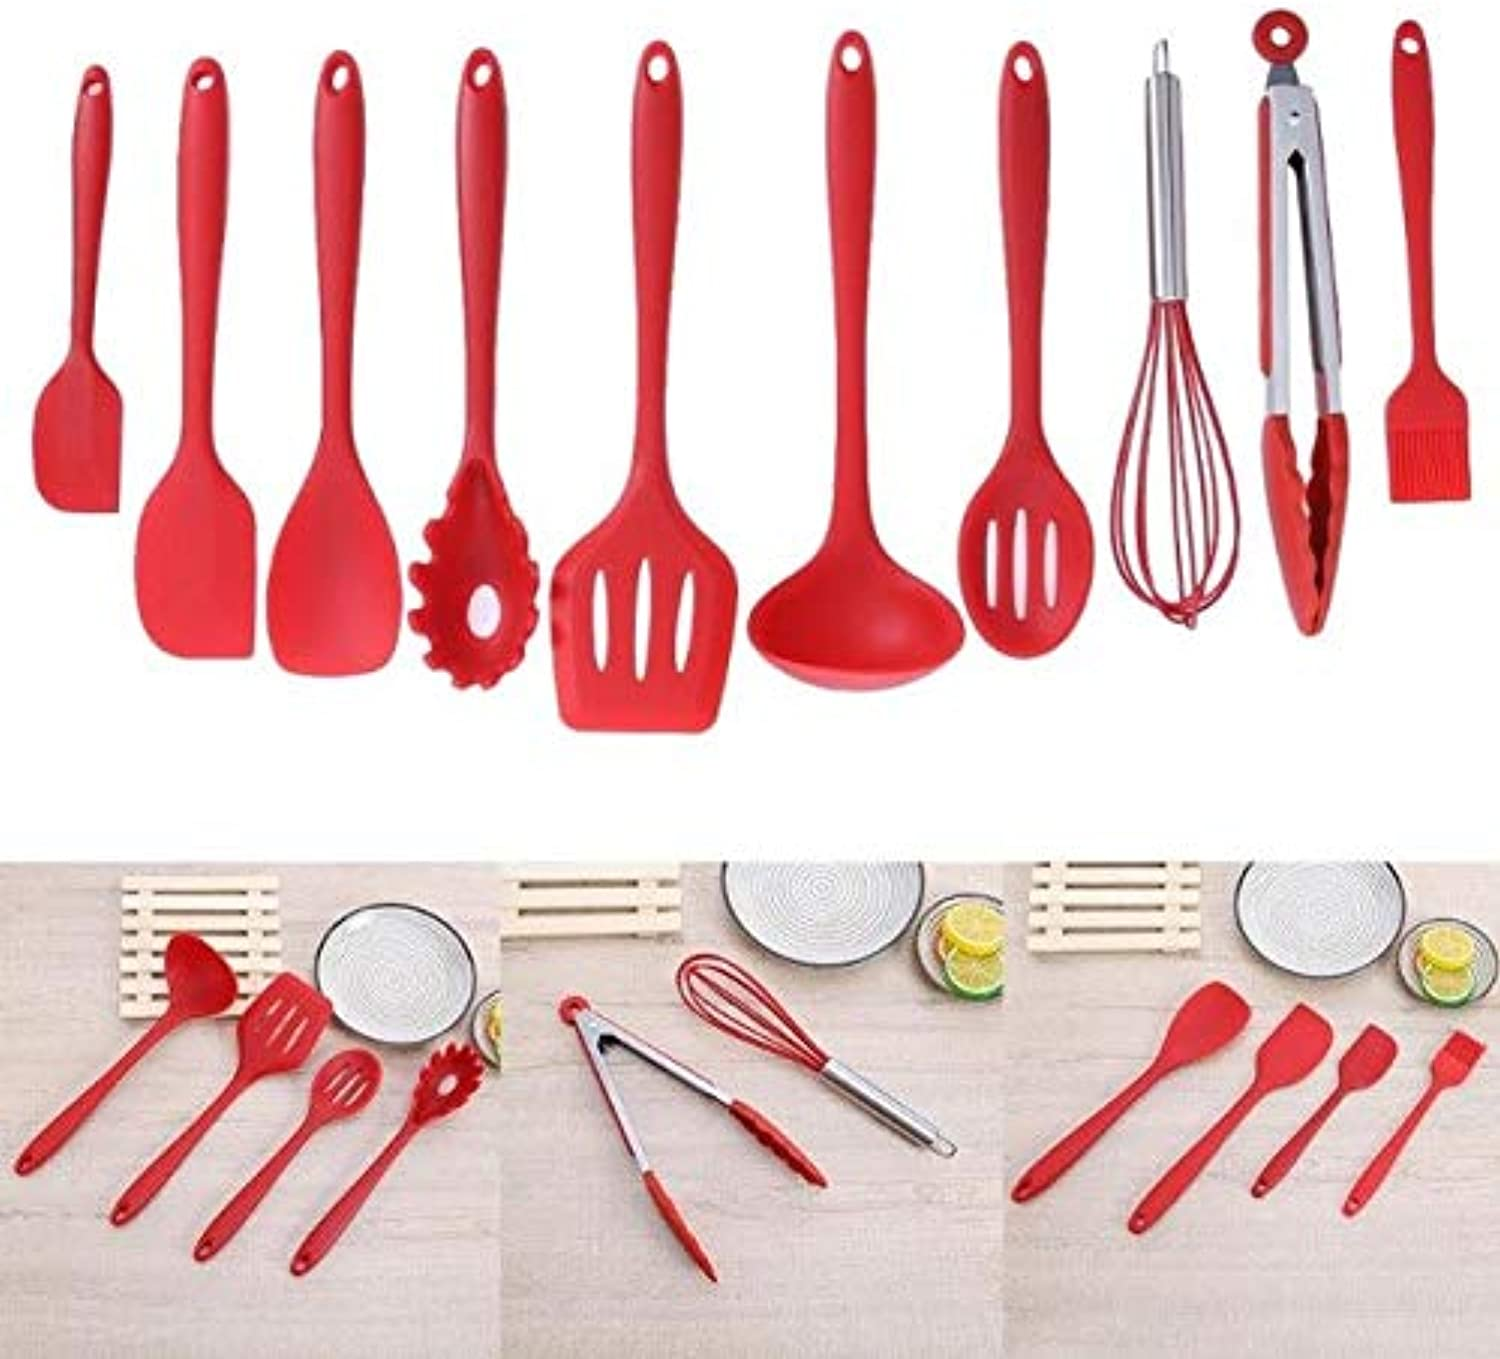 Farmerly 10 pcs Set Kitchen Tools Silicone Cooking Tools Kitchen Utensils Set of Silicone Kitchenware Spatula Spoon Ladle Spaghetti Serve   Red